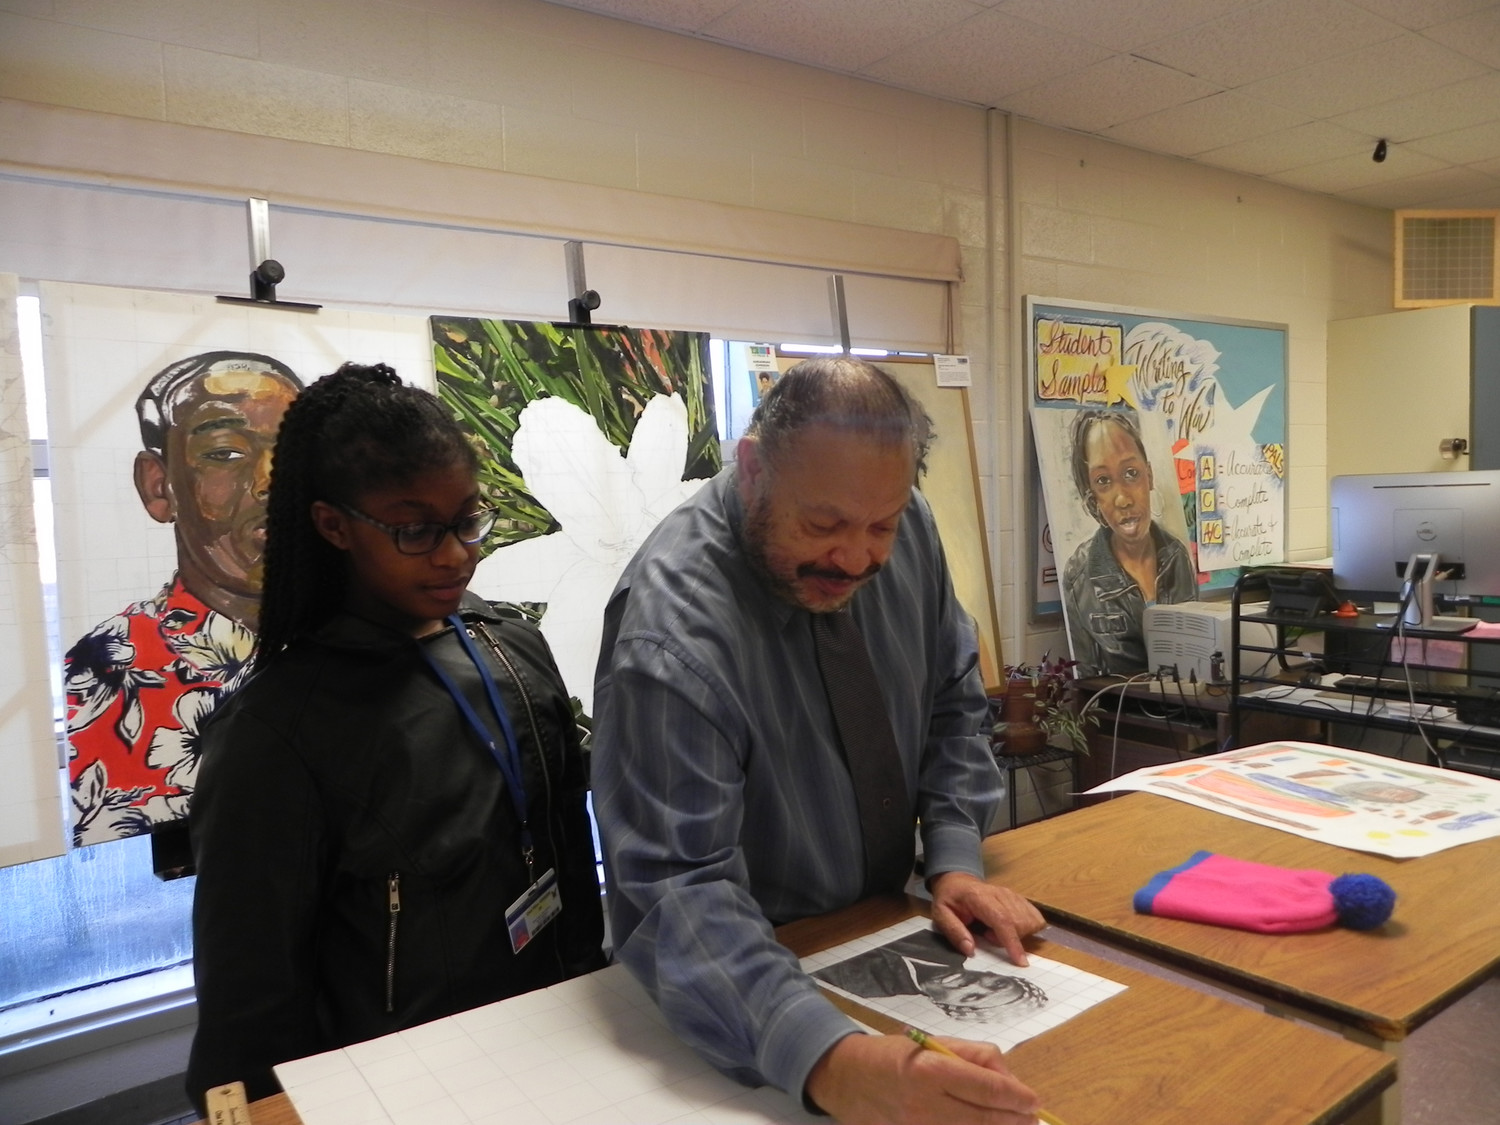 Tarleton Blackwell instructs student Dae' Sha Green about techniques for completing her portrait of Harriet Tubman. His students' work is featured at the Lake Marion Artisans Gallery during Black History Month.